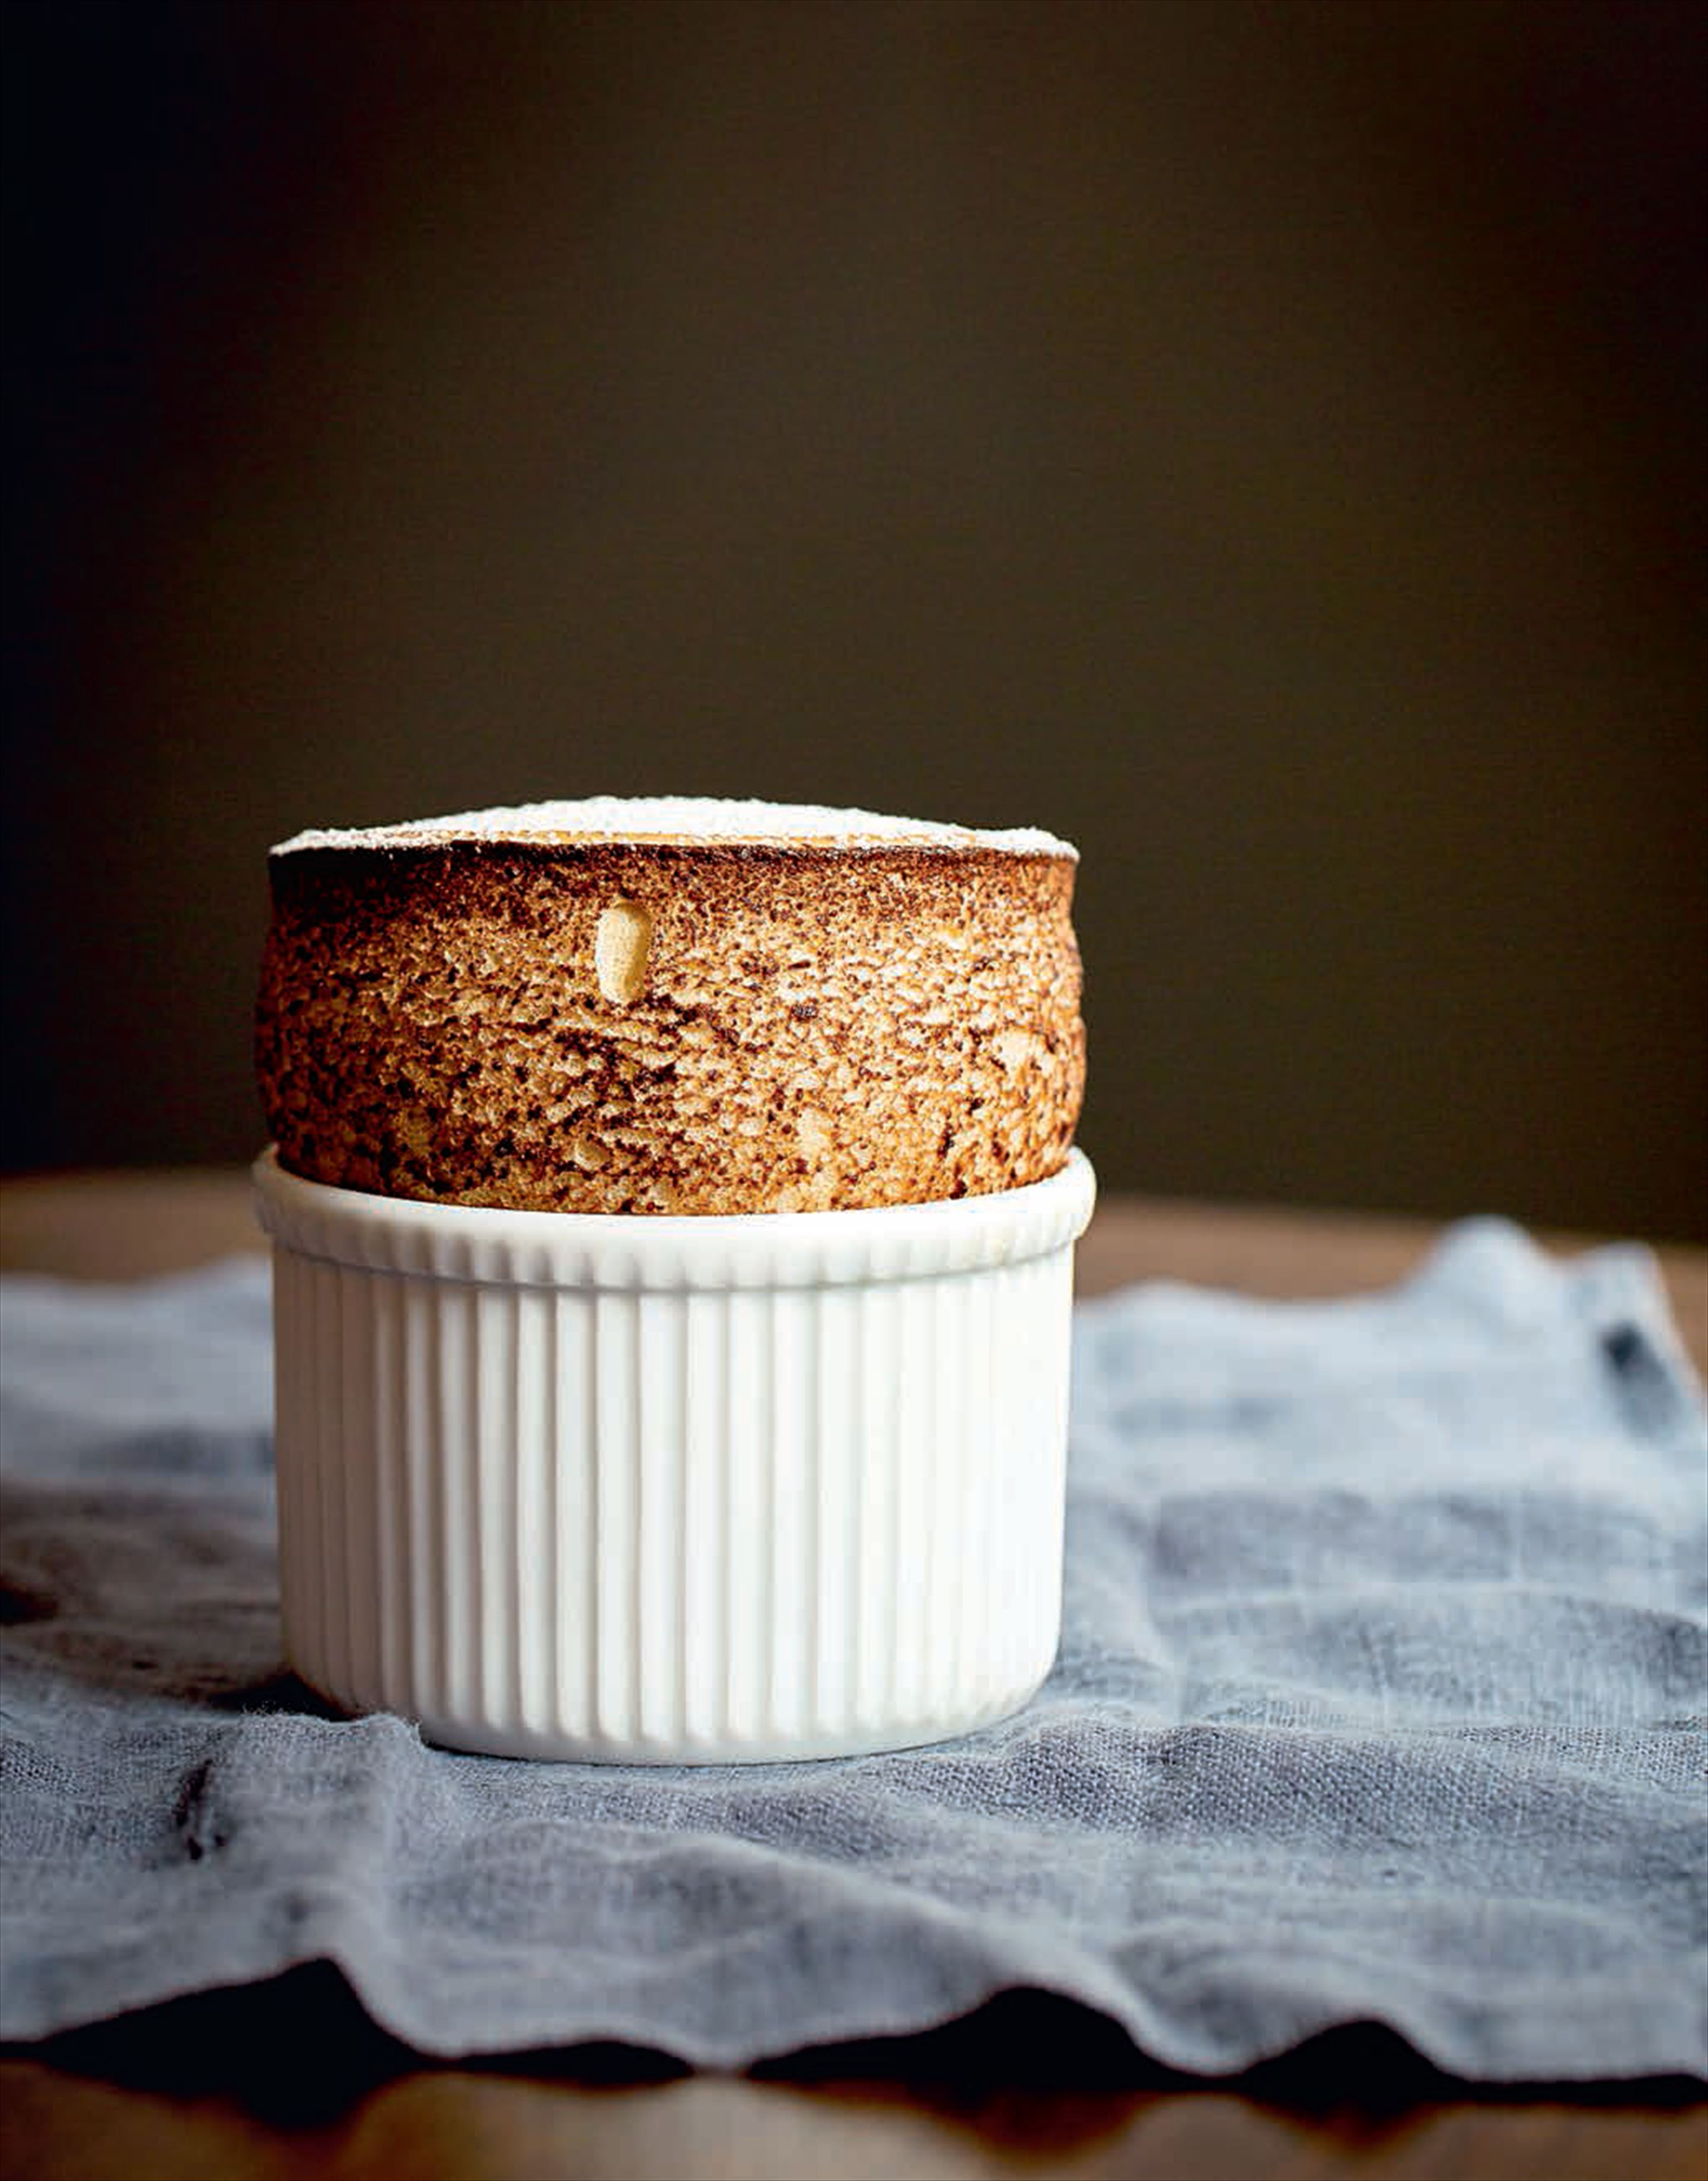 City social earl grey tea soufflé